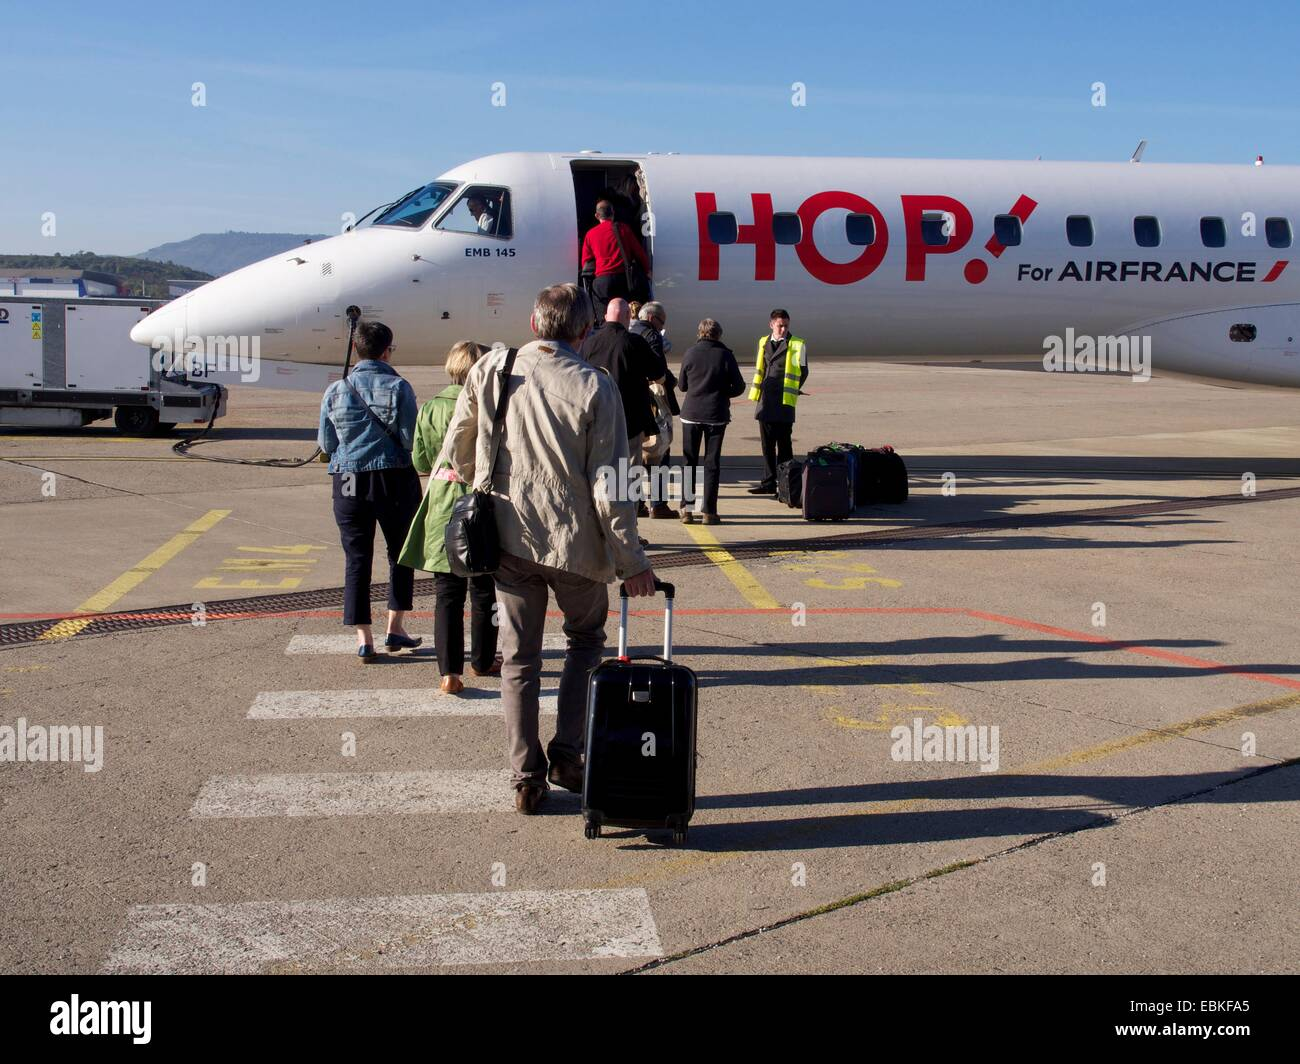 Airplane of the French company Hop, Aulnat, Clermont-Ferrand, Puy-de-Dome, Auvergne, France, Europe - Stock Image